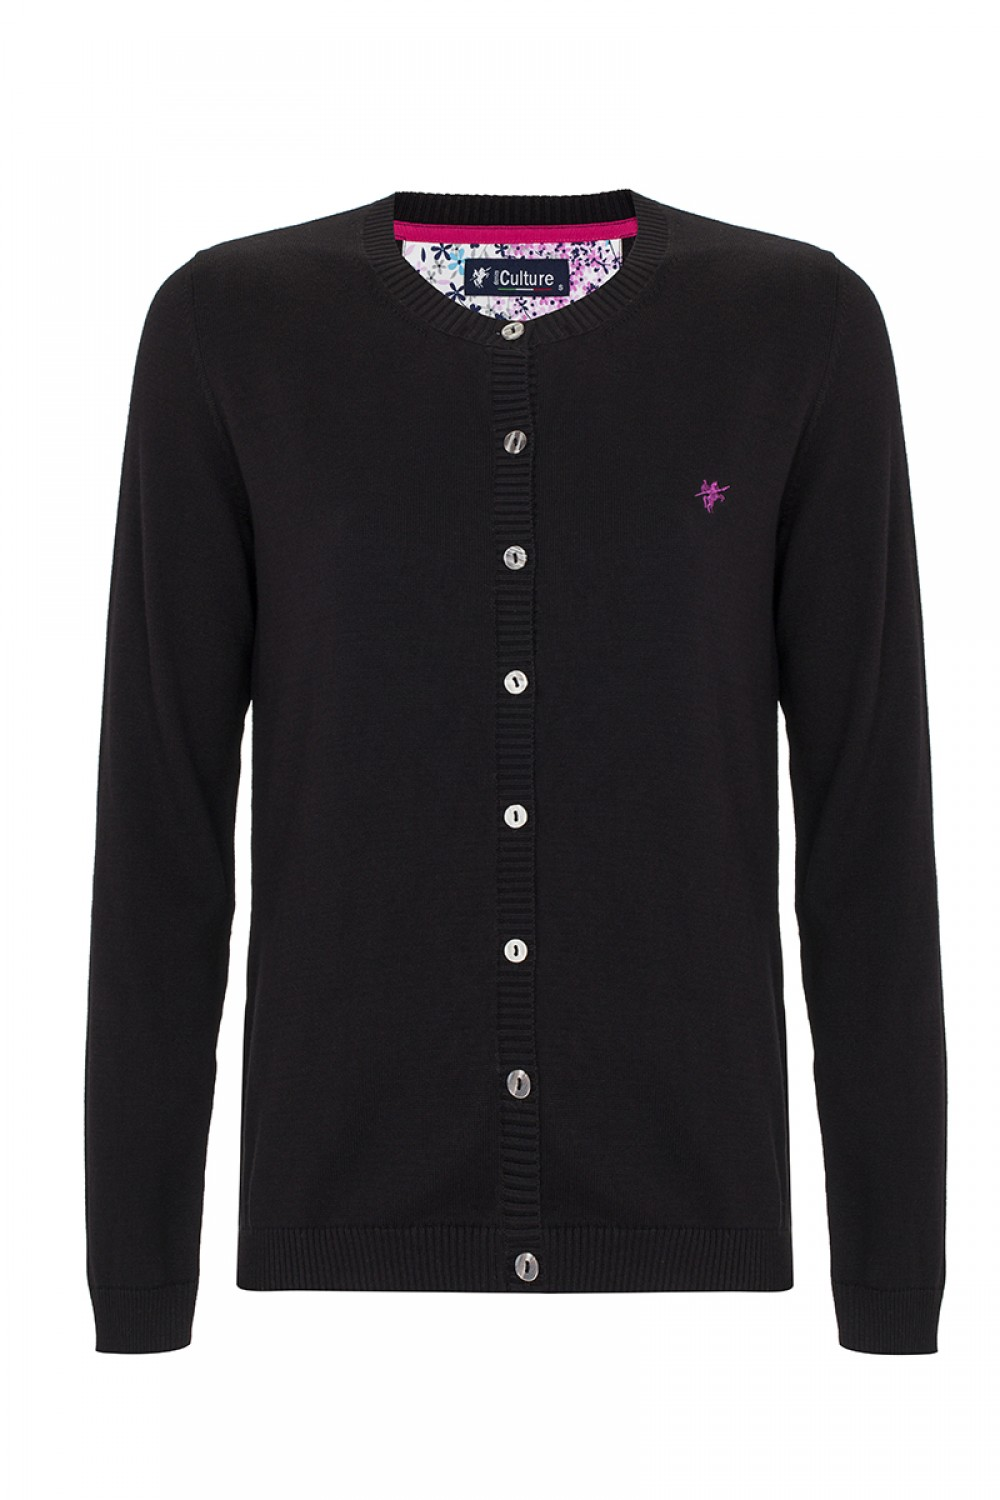 Women's Cardigan Button Crew Neck Black